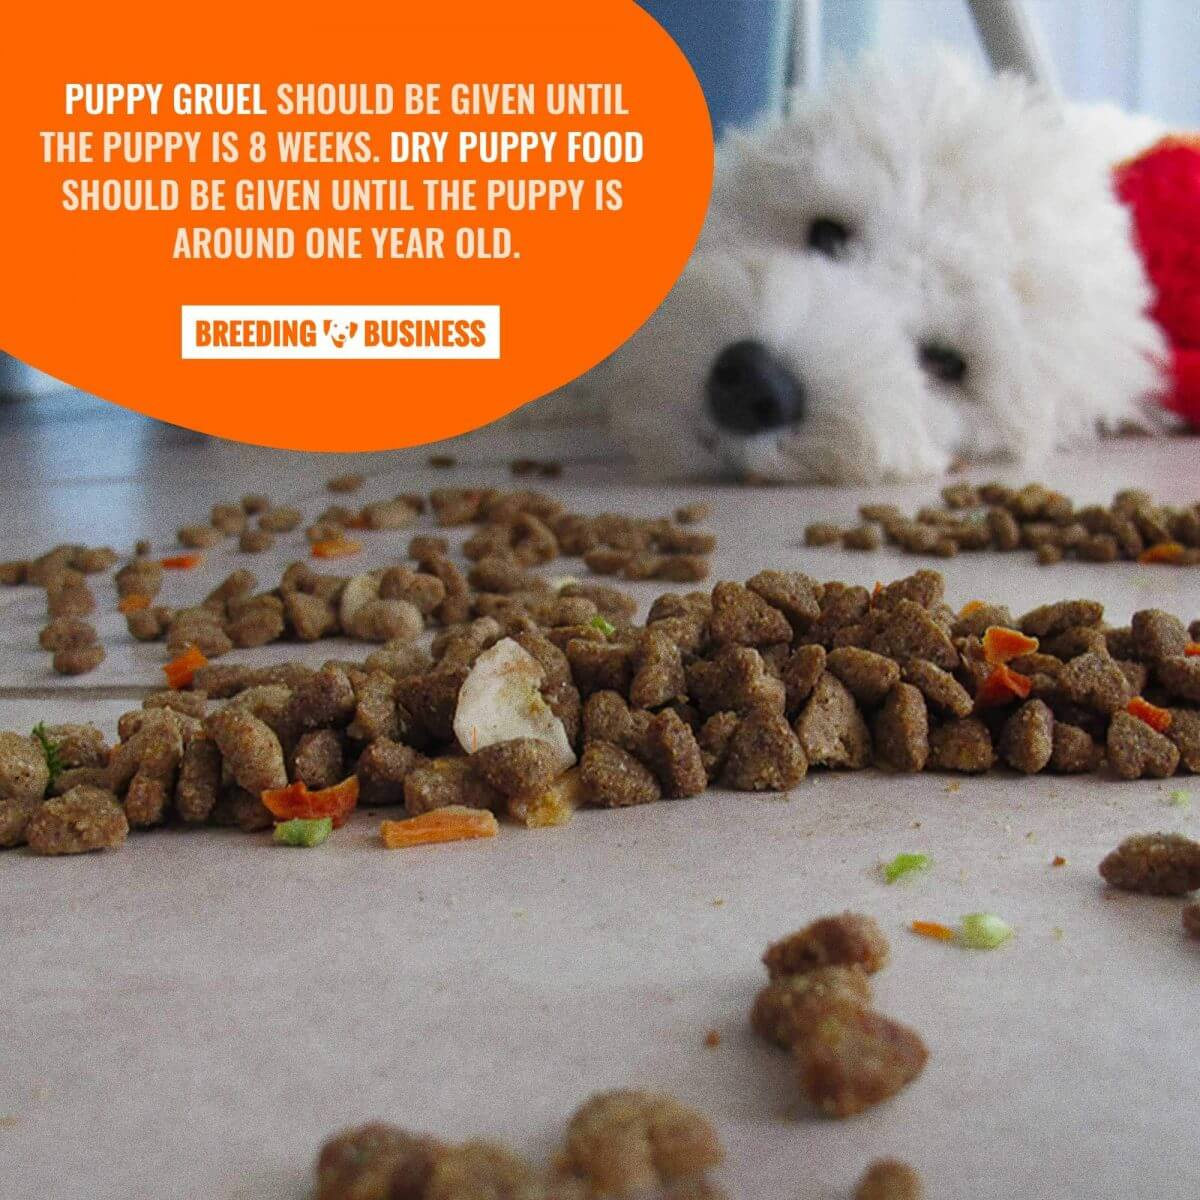 when to stop giving gruel and feeding puppy food